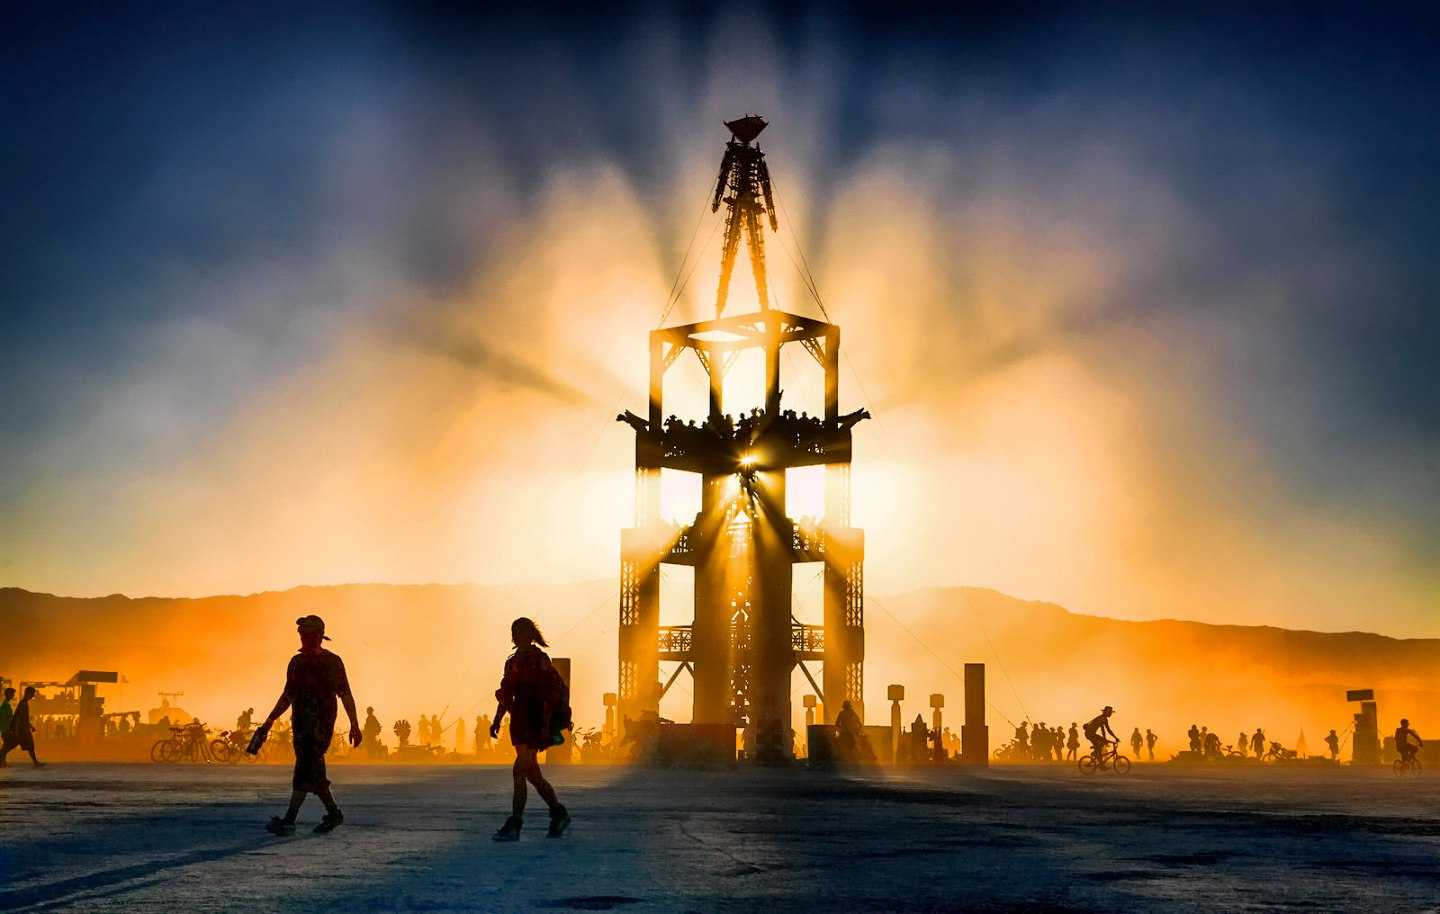 The Burning Man 2020